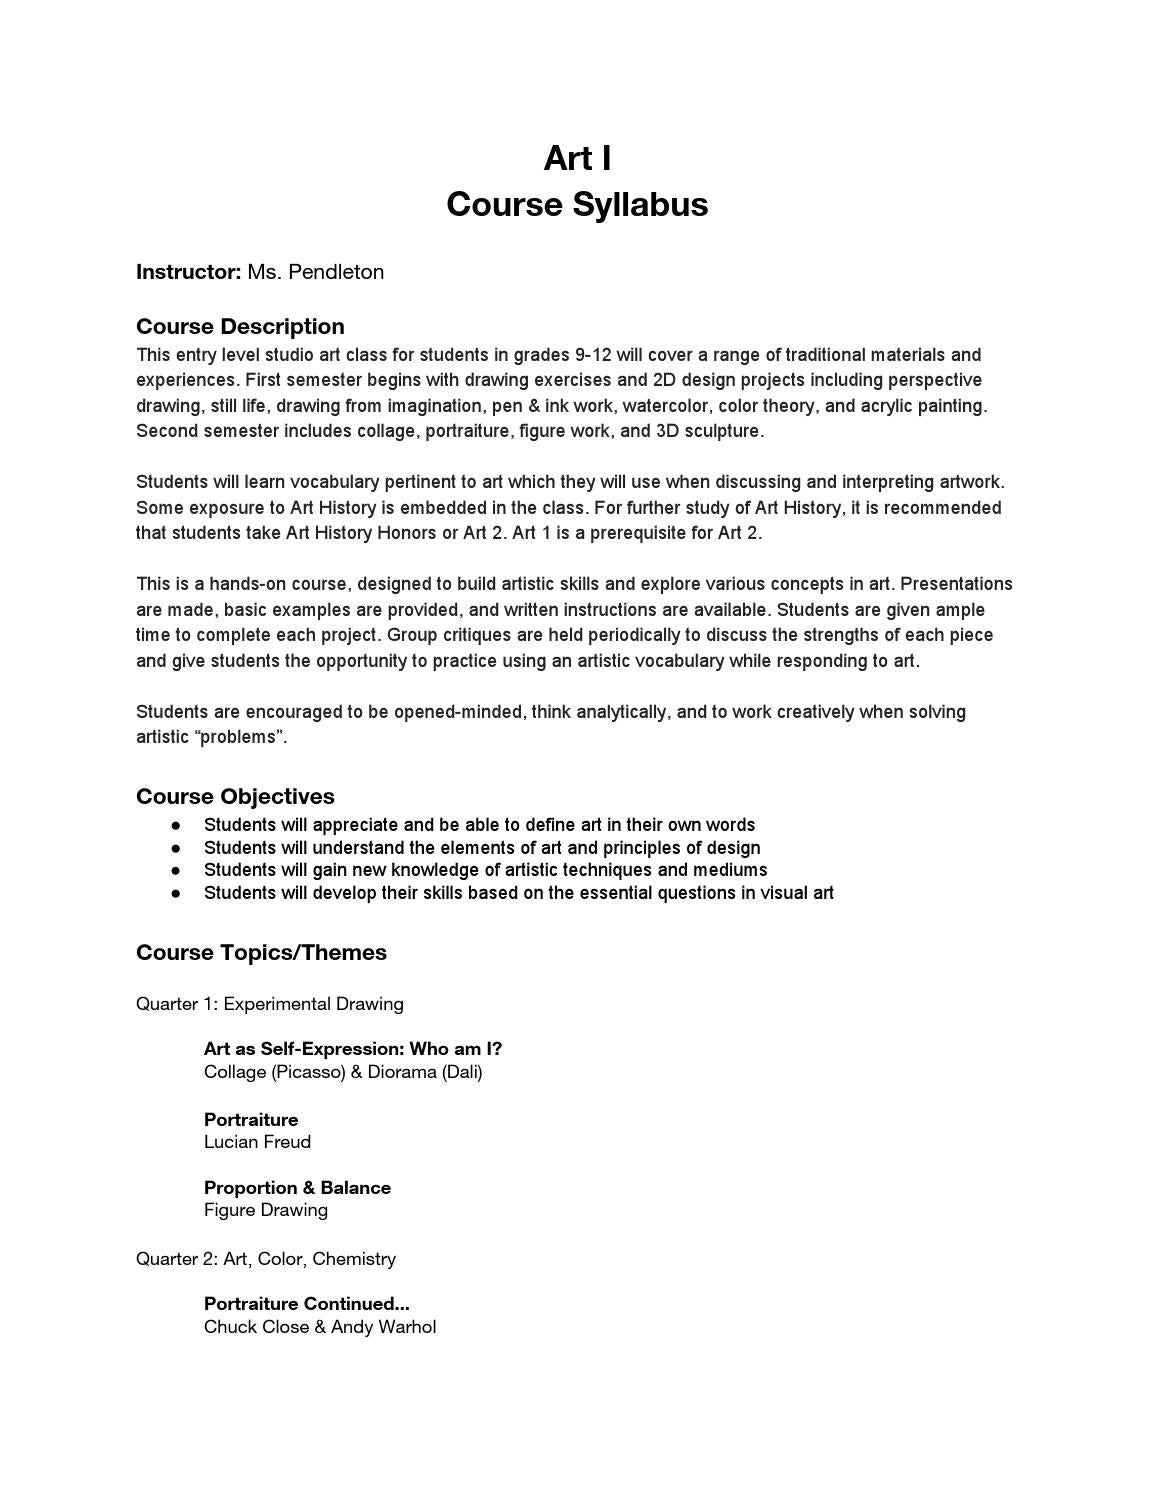 Art 1 Syllabus By Megan Pendleton Issuu